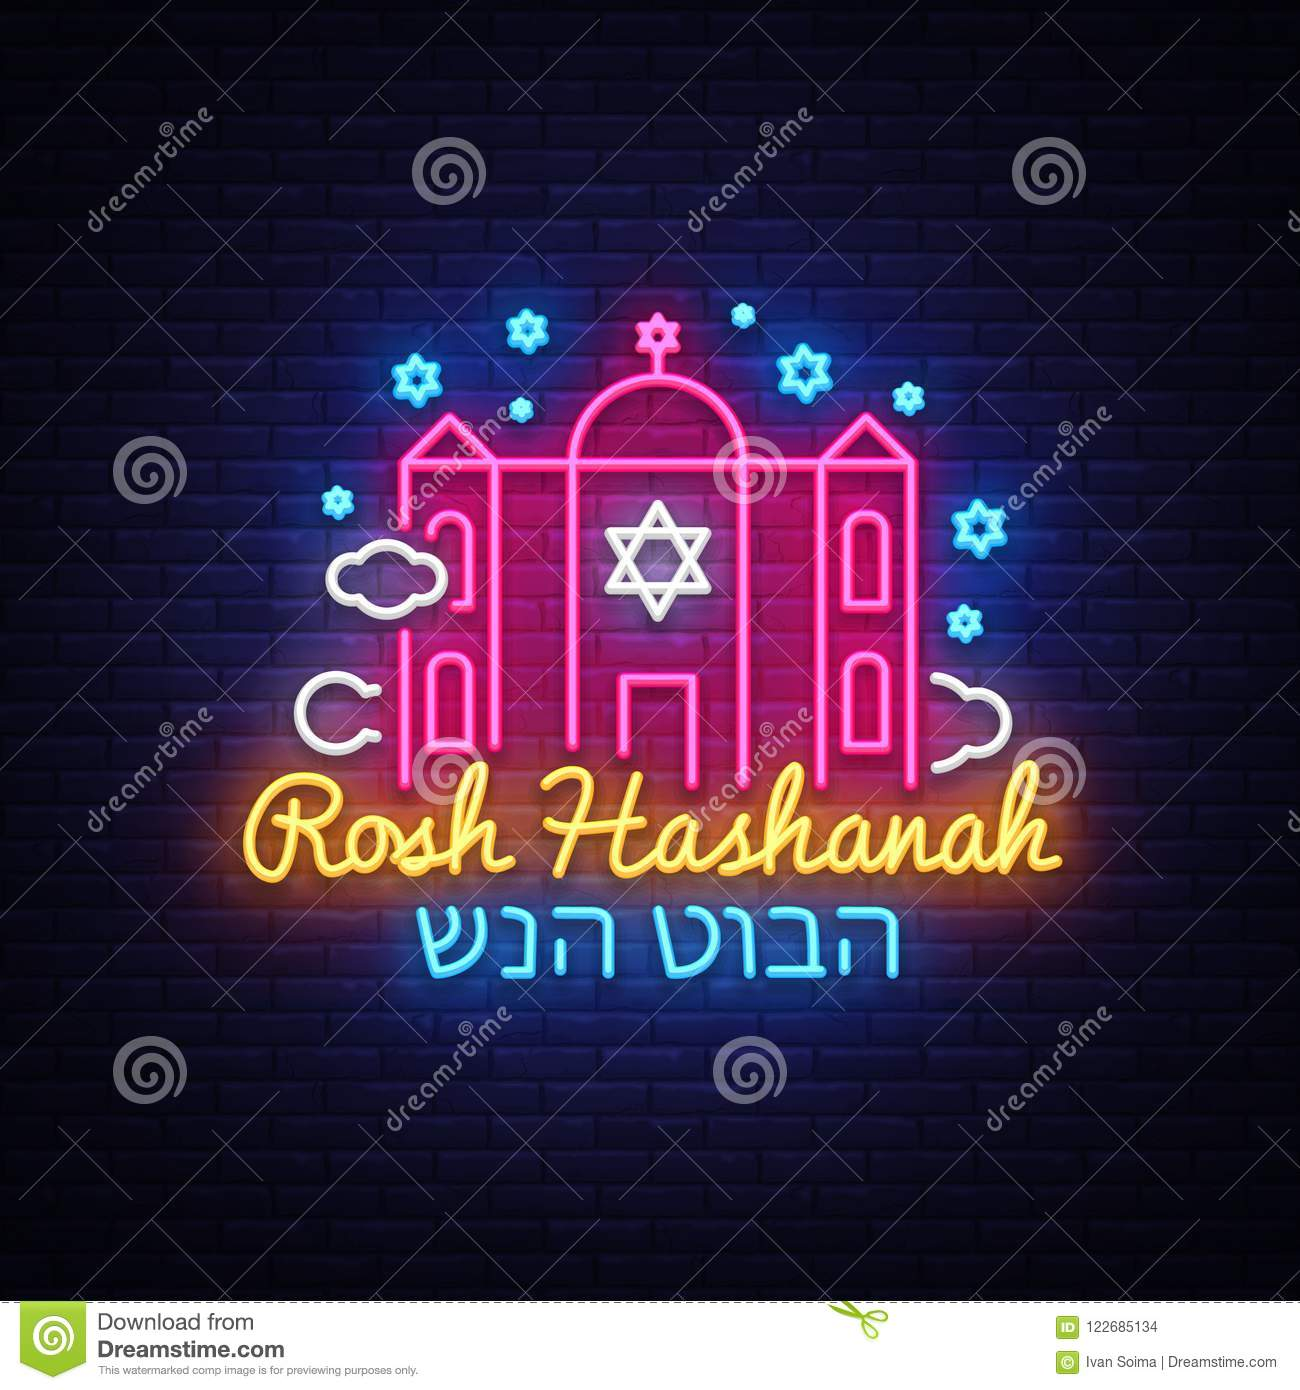 Rosh hashanah greeting card design templet vector illustration download comp m4hsunfo